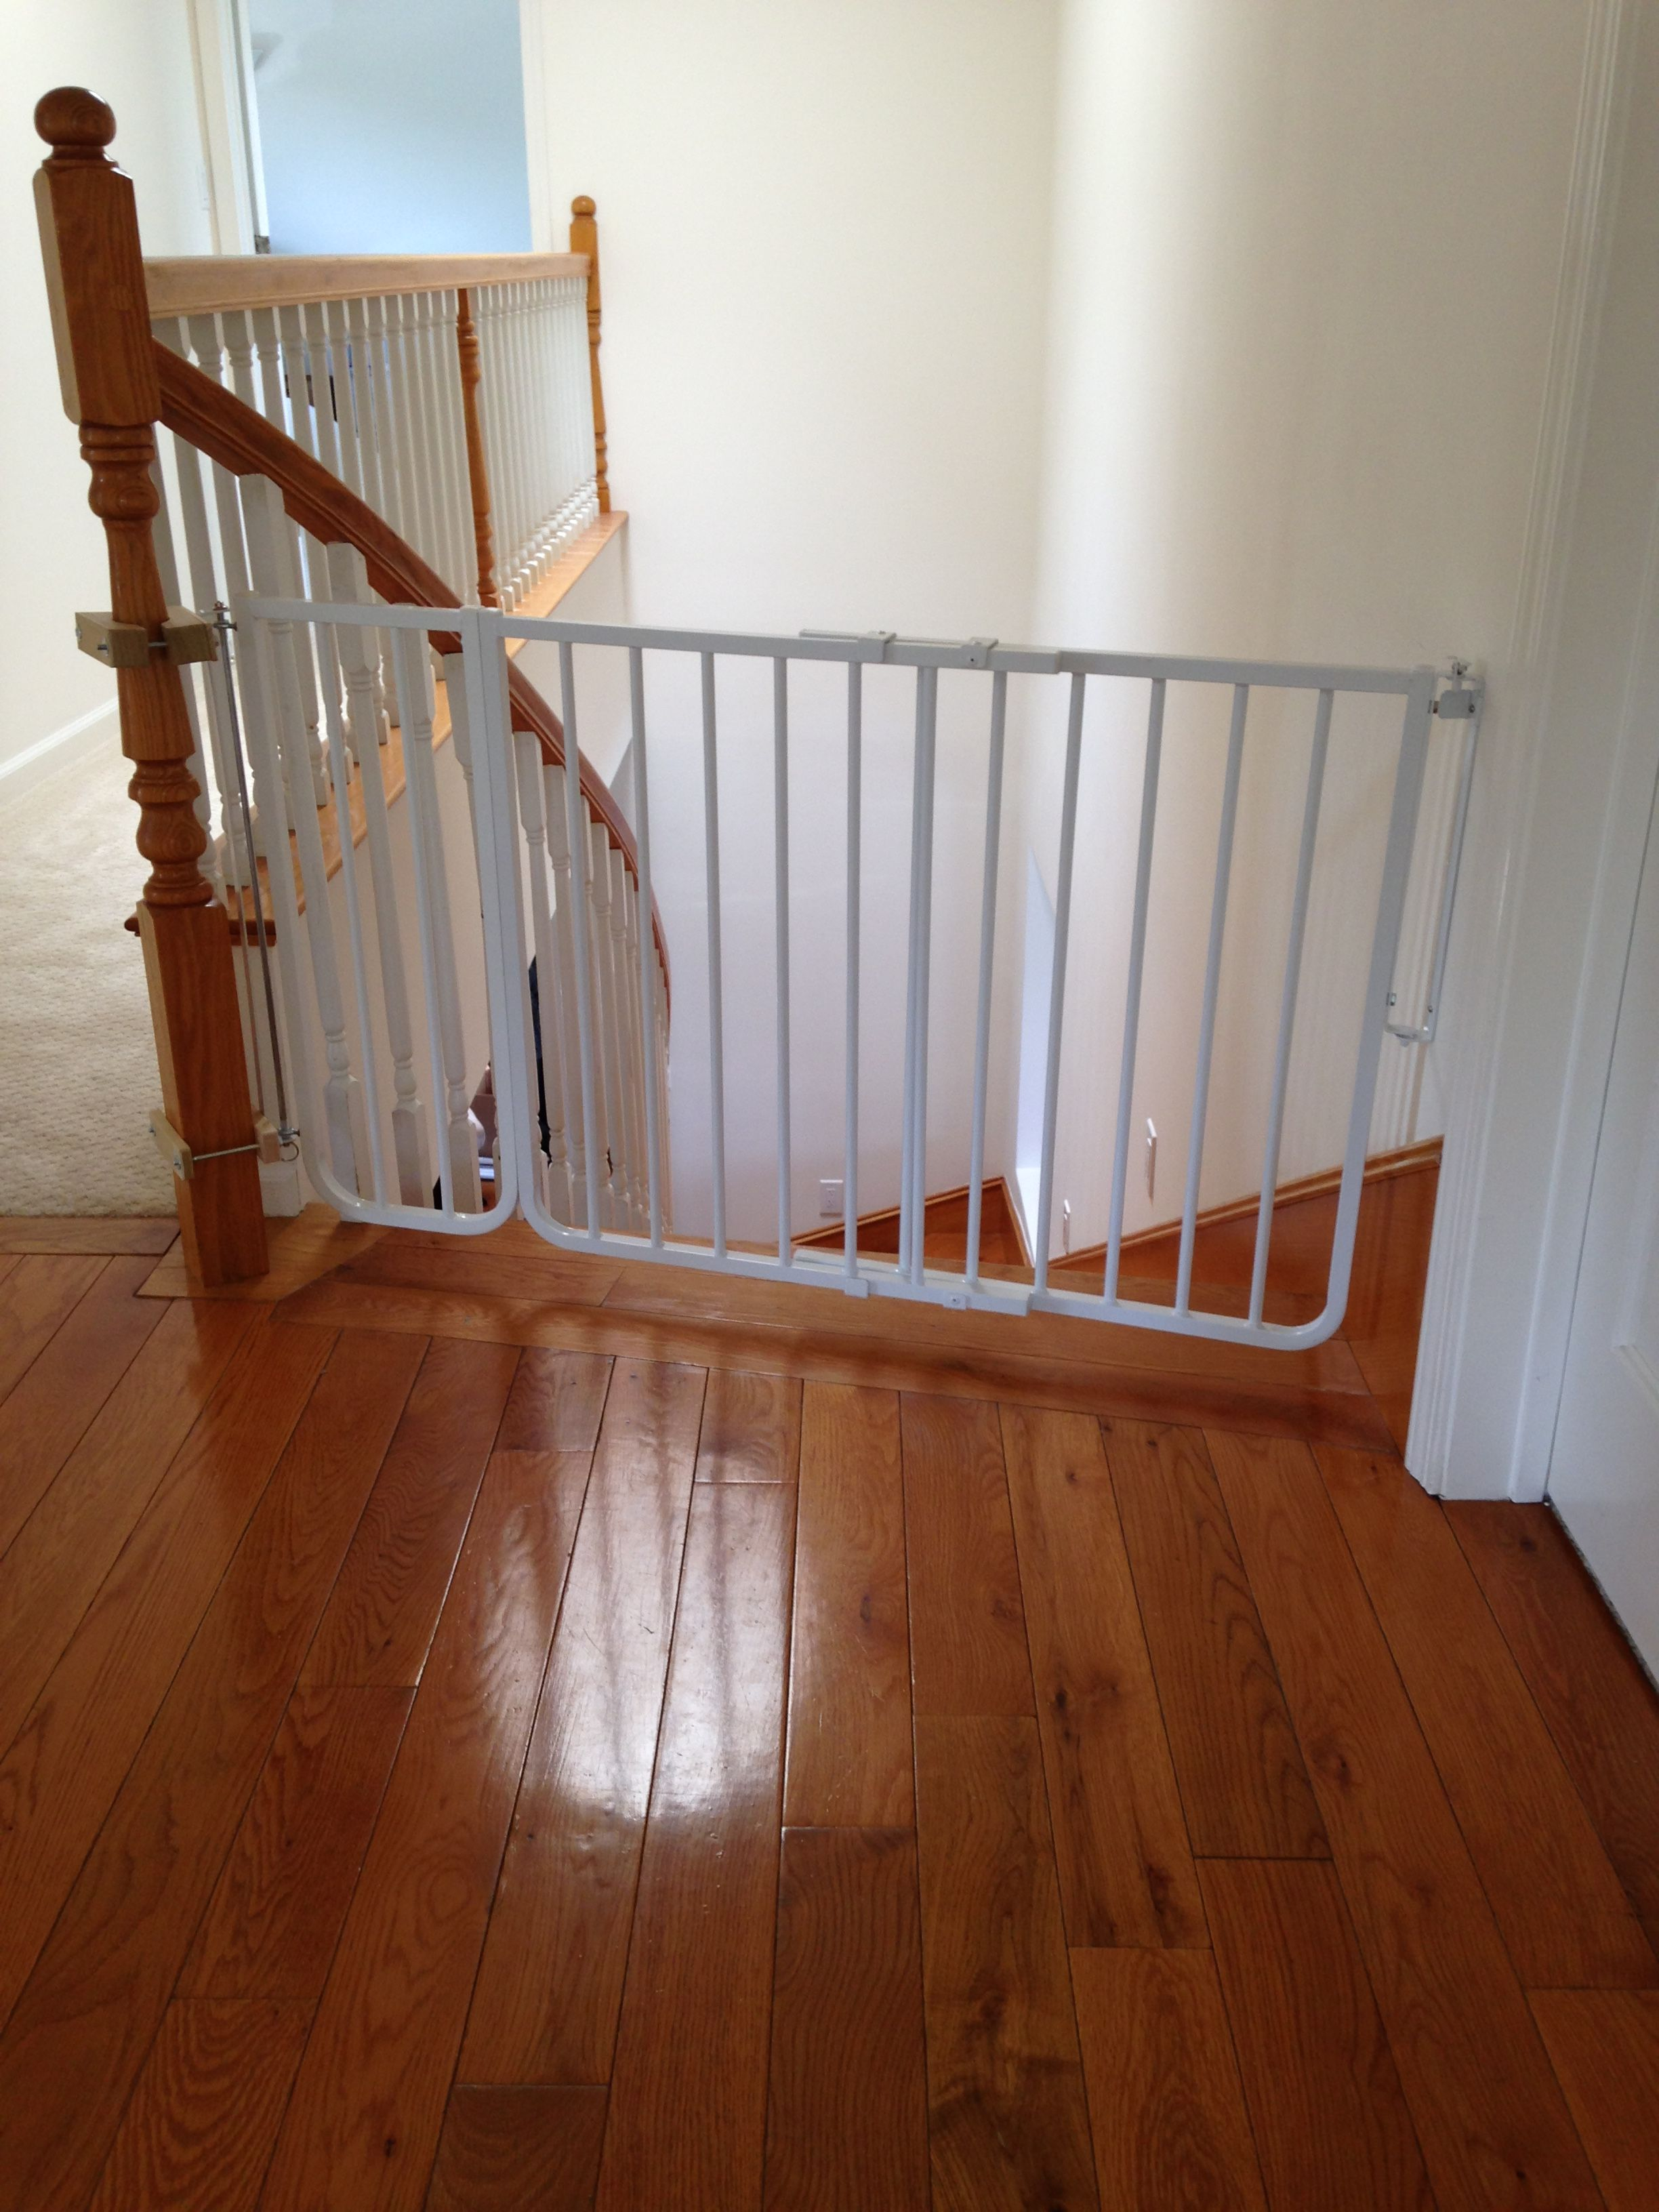 Successfully installed gate at the top of the stairs